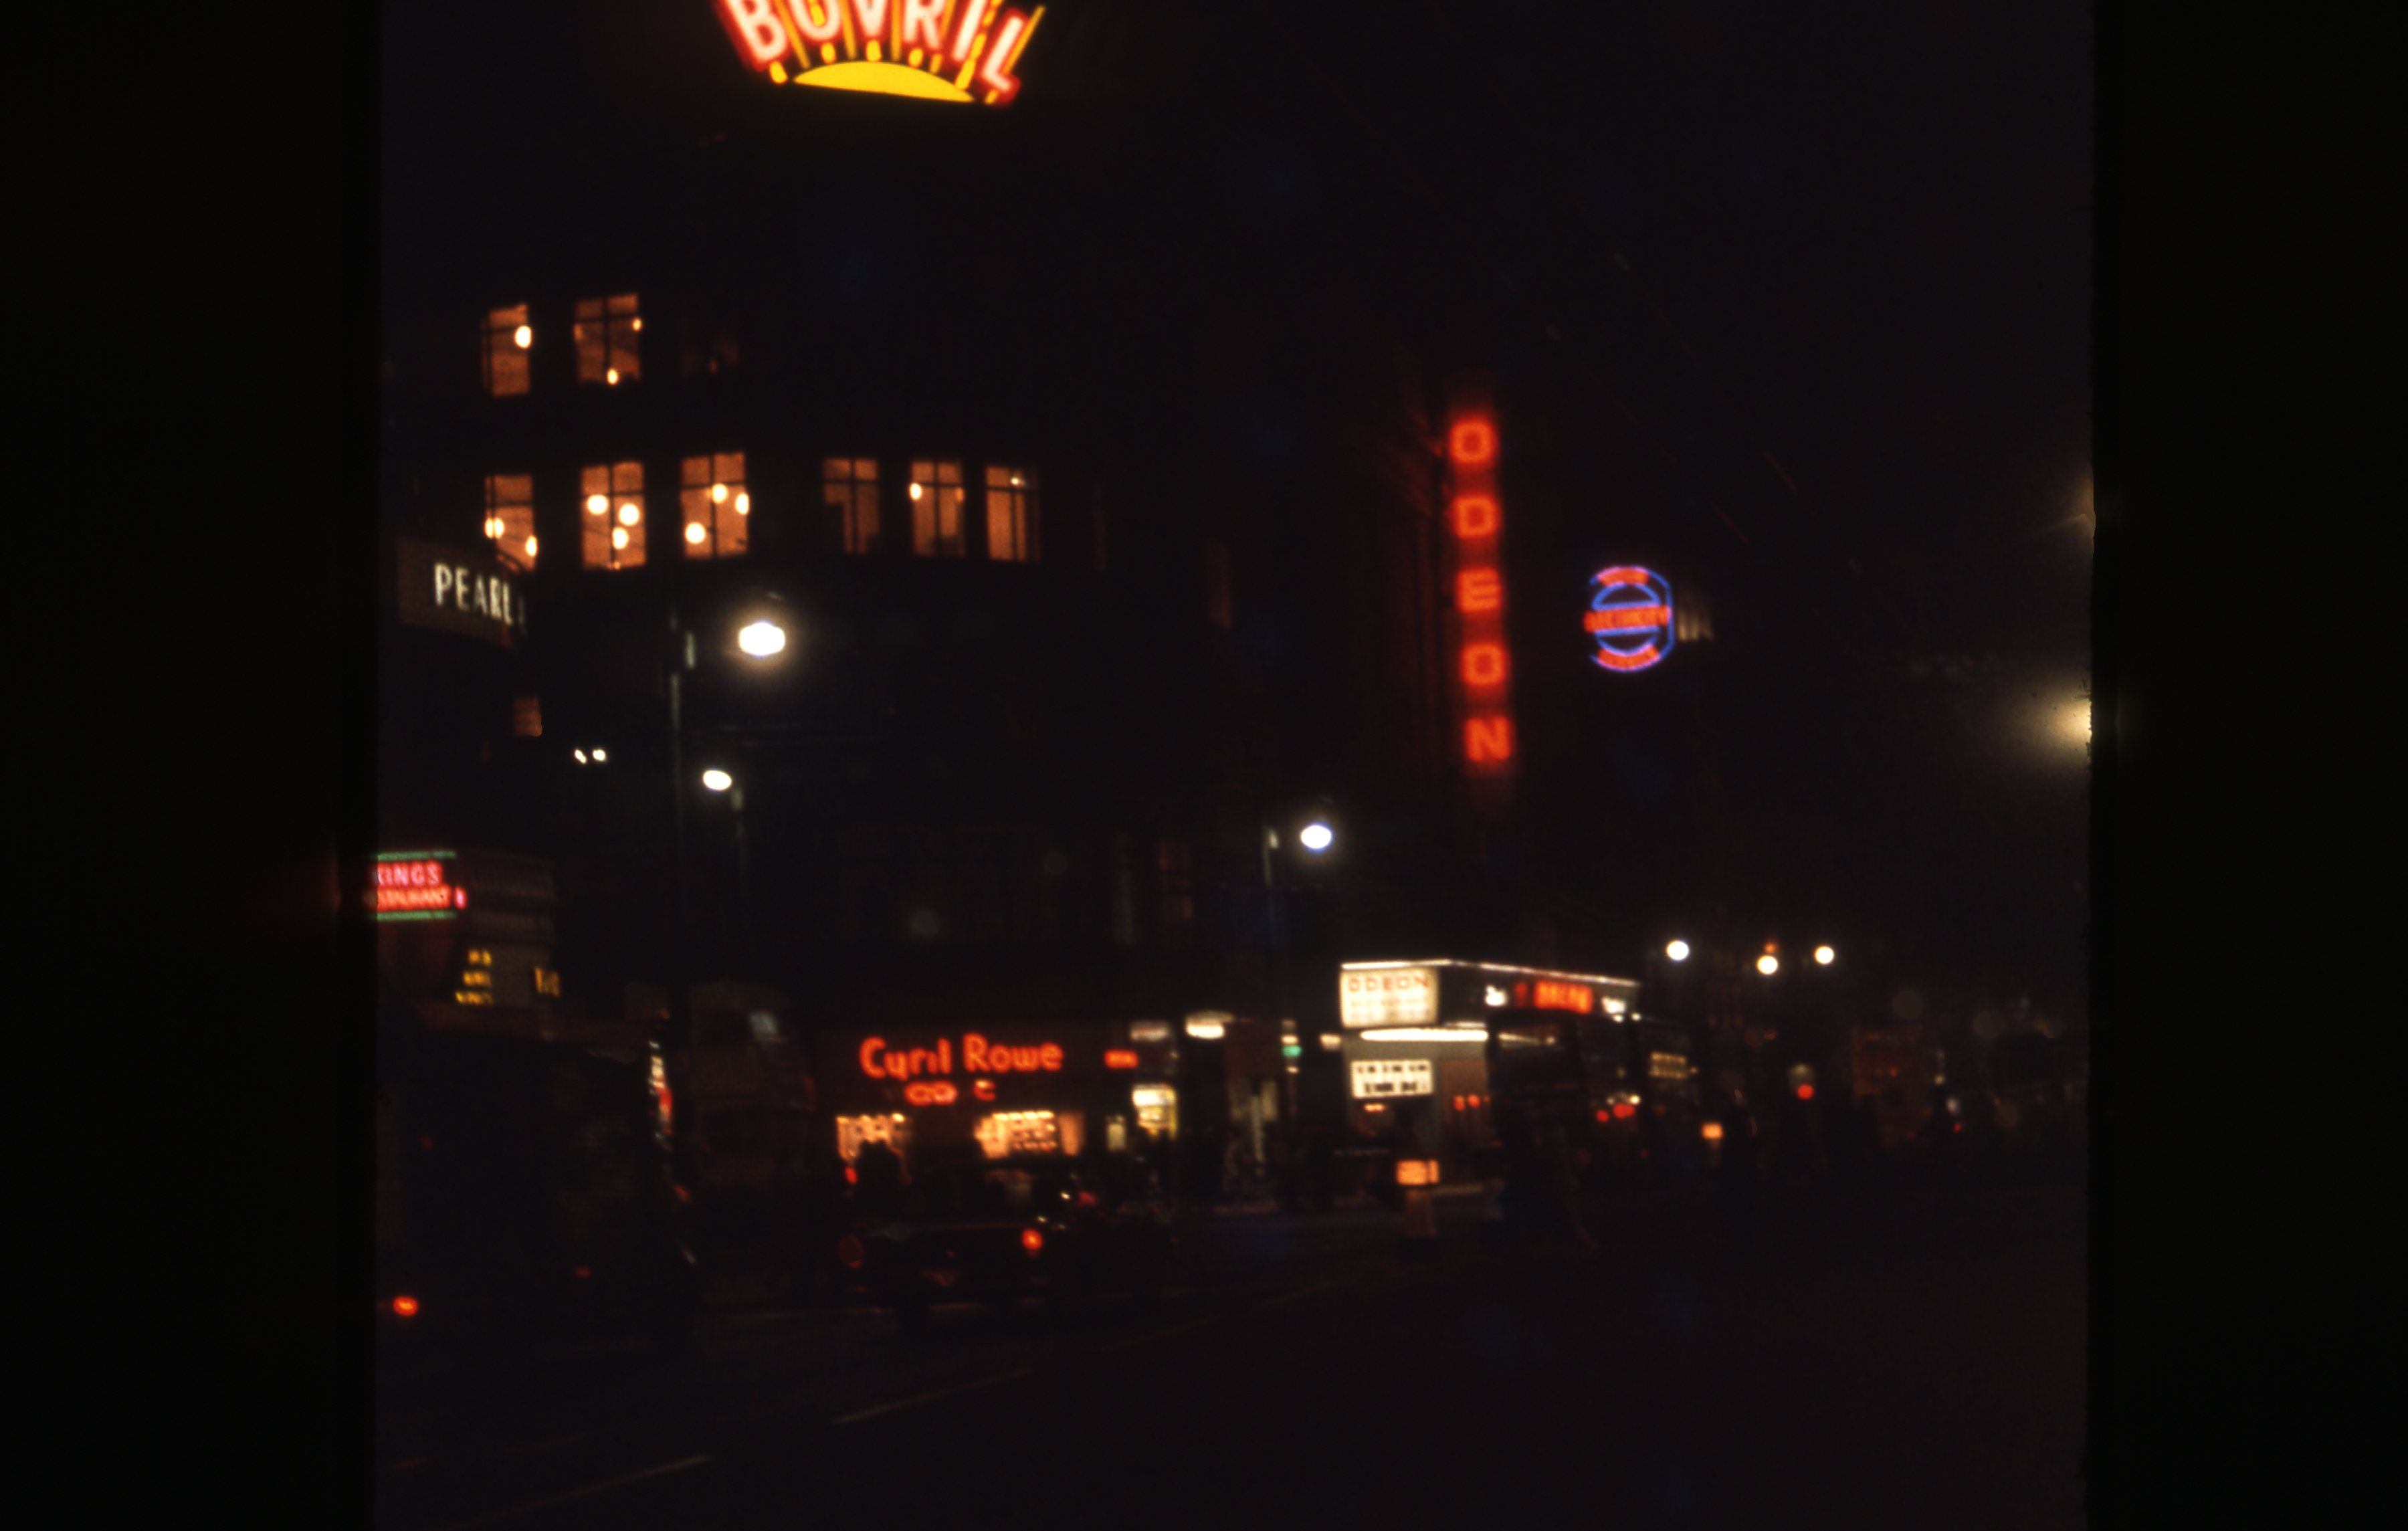 This is a night view of Northumberland street, Newcastle upon Tyne. It is illuminated by many festive commercial signs and decorations. This is a 35mm slide. It was taken in 1962.